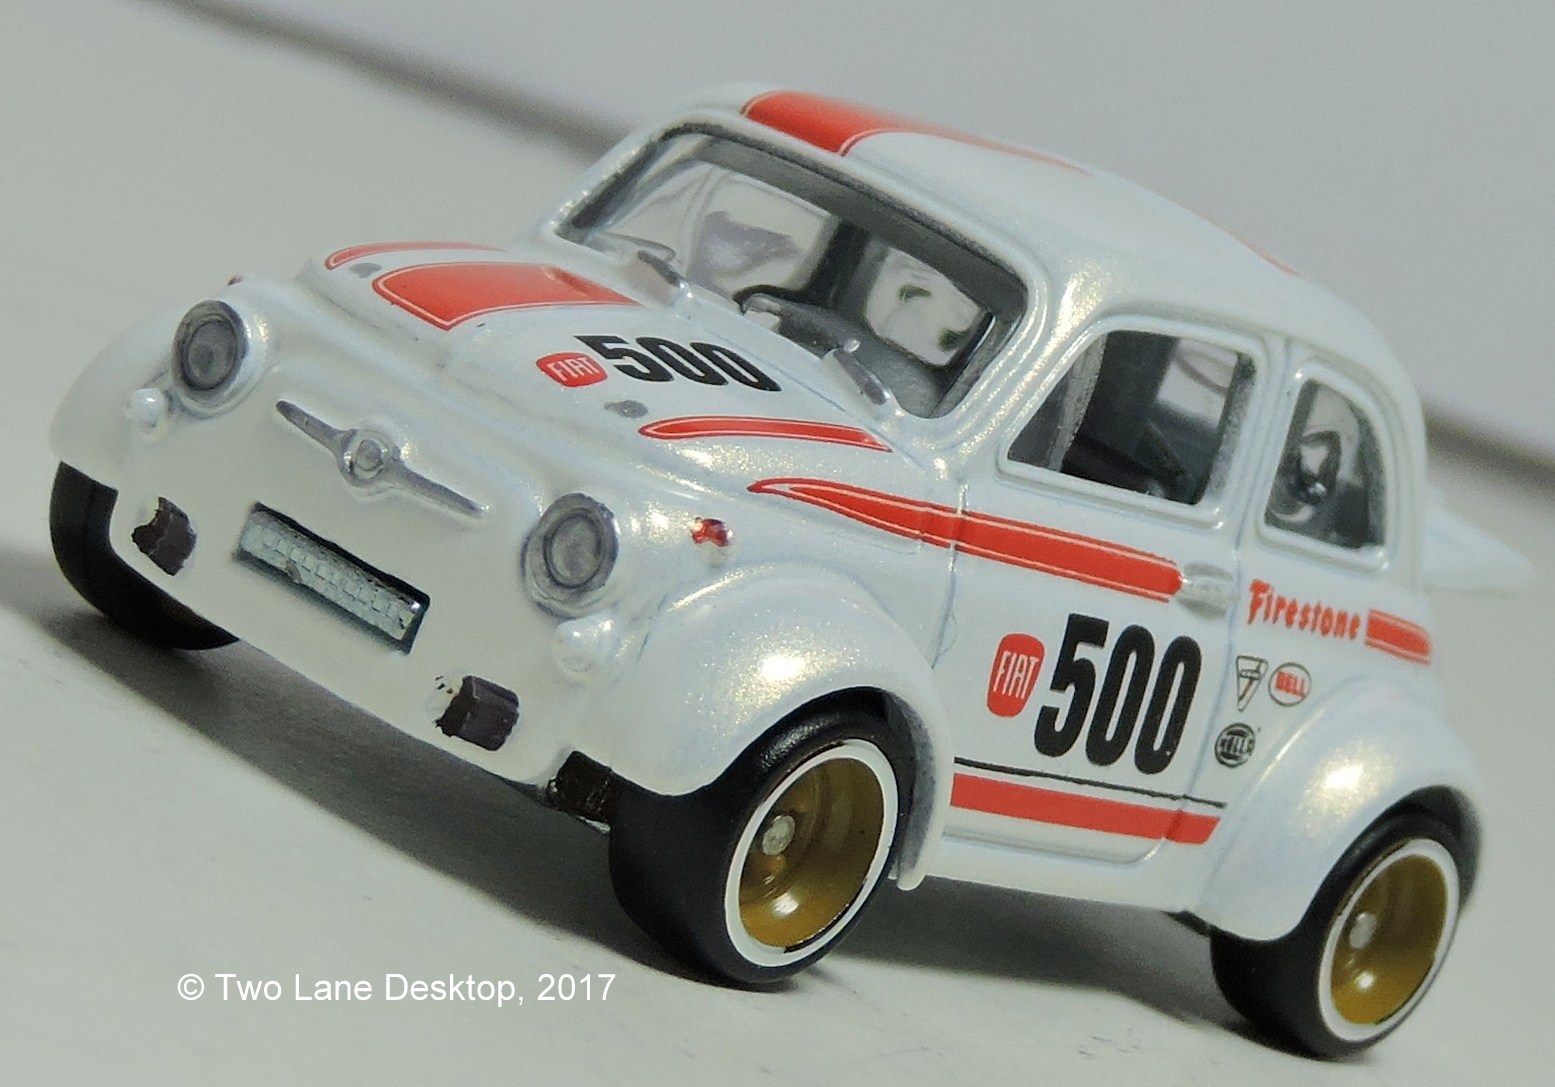 two lane desktop: hot wheels air cooled porsche 356 outlaw and